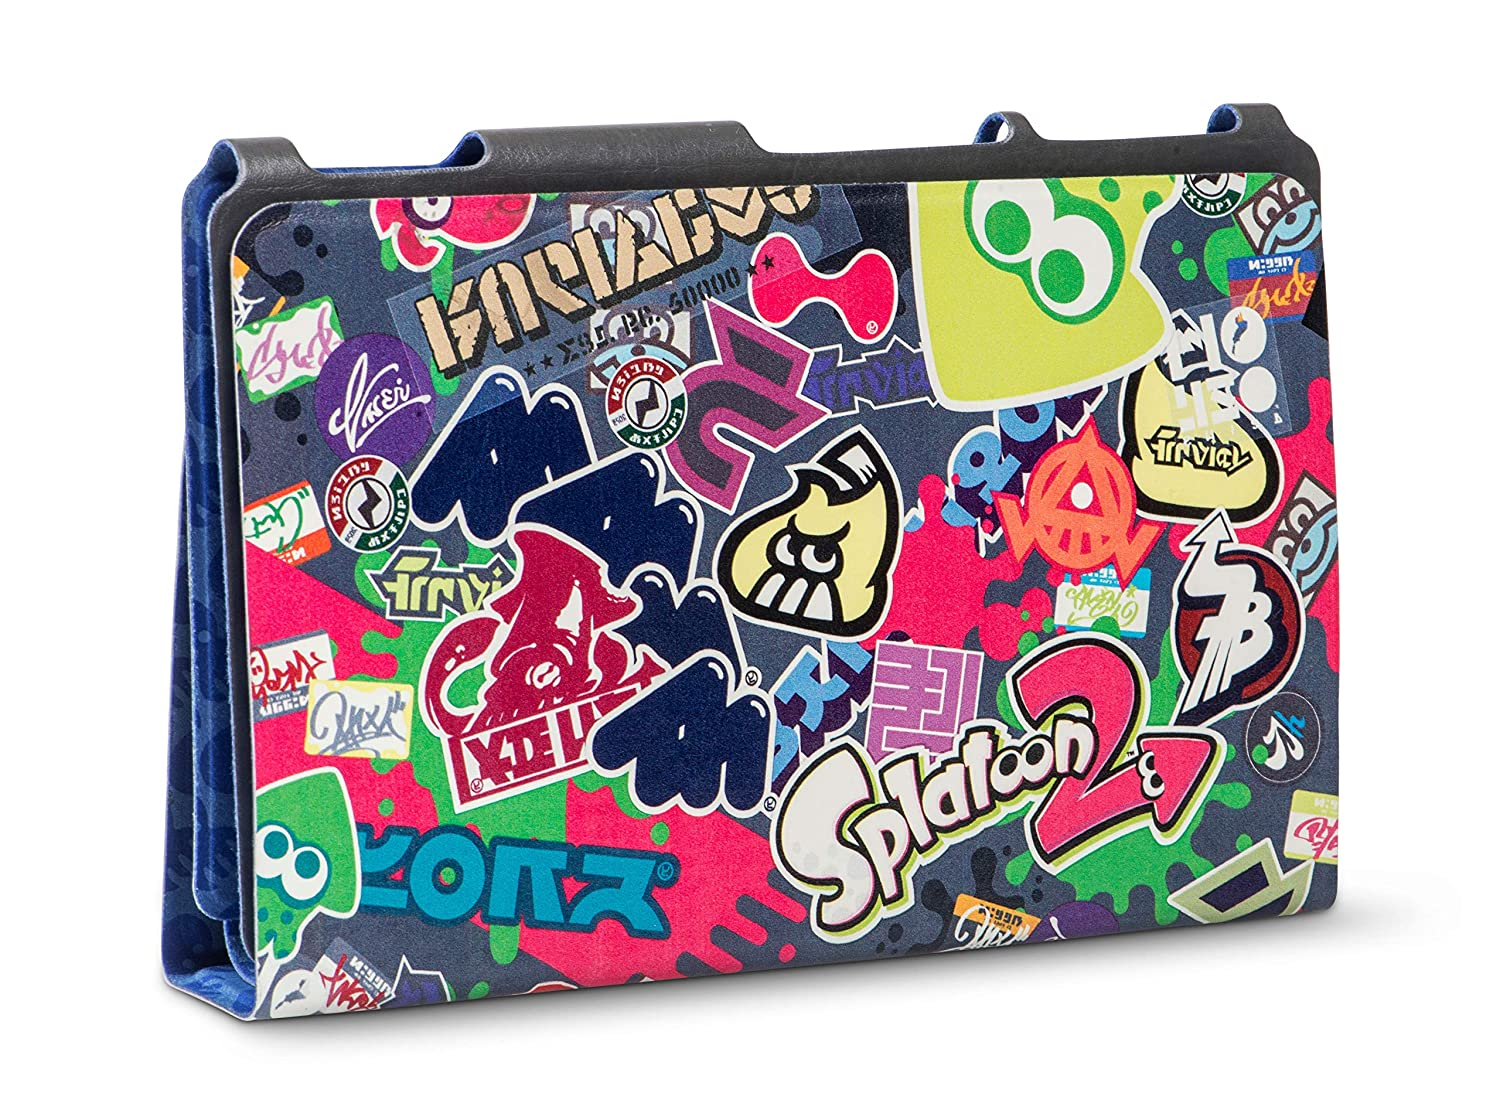 Case Hybrid Cover Splatoon 2 (Envio Internacional) - Nintendo Switch